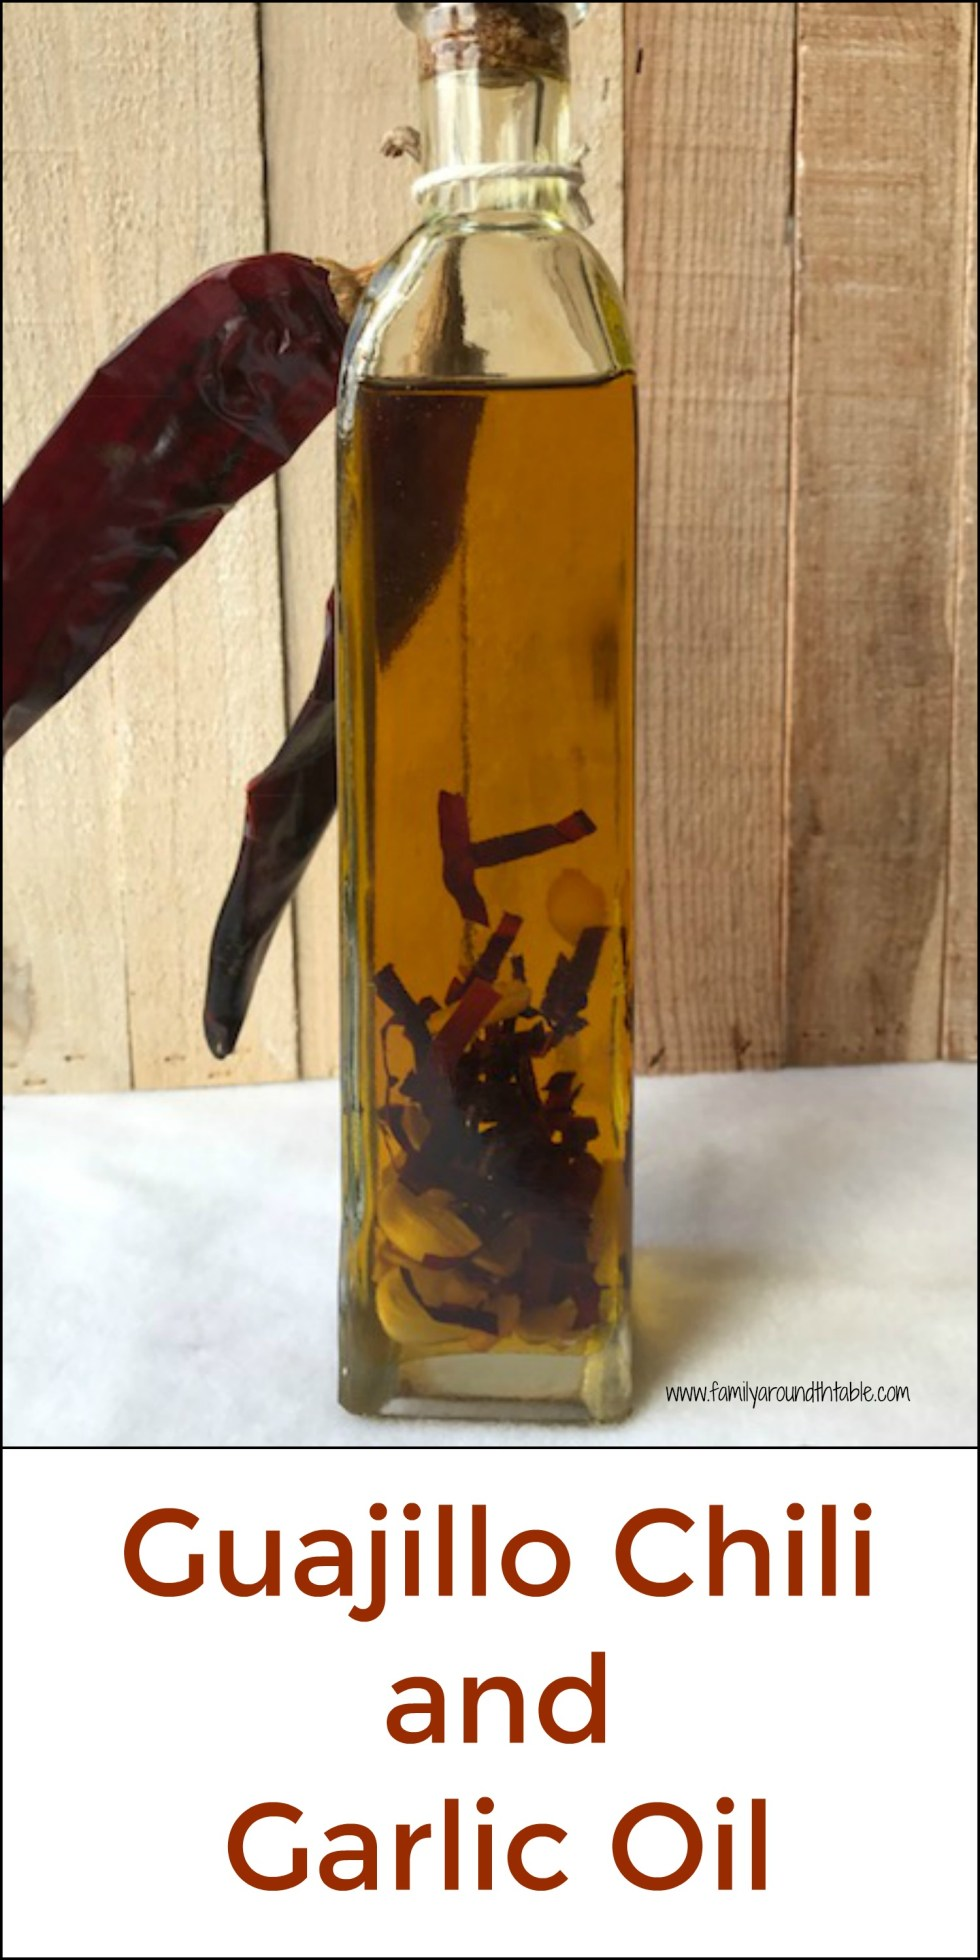 Use guajillo chili and garlic oil on fish, chicken or roasted vegetables.